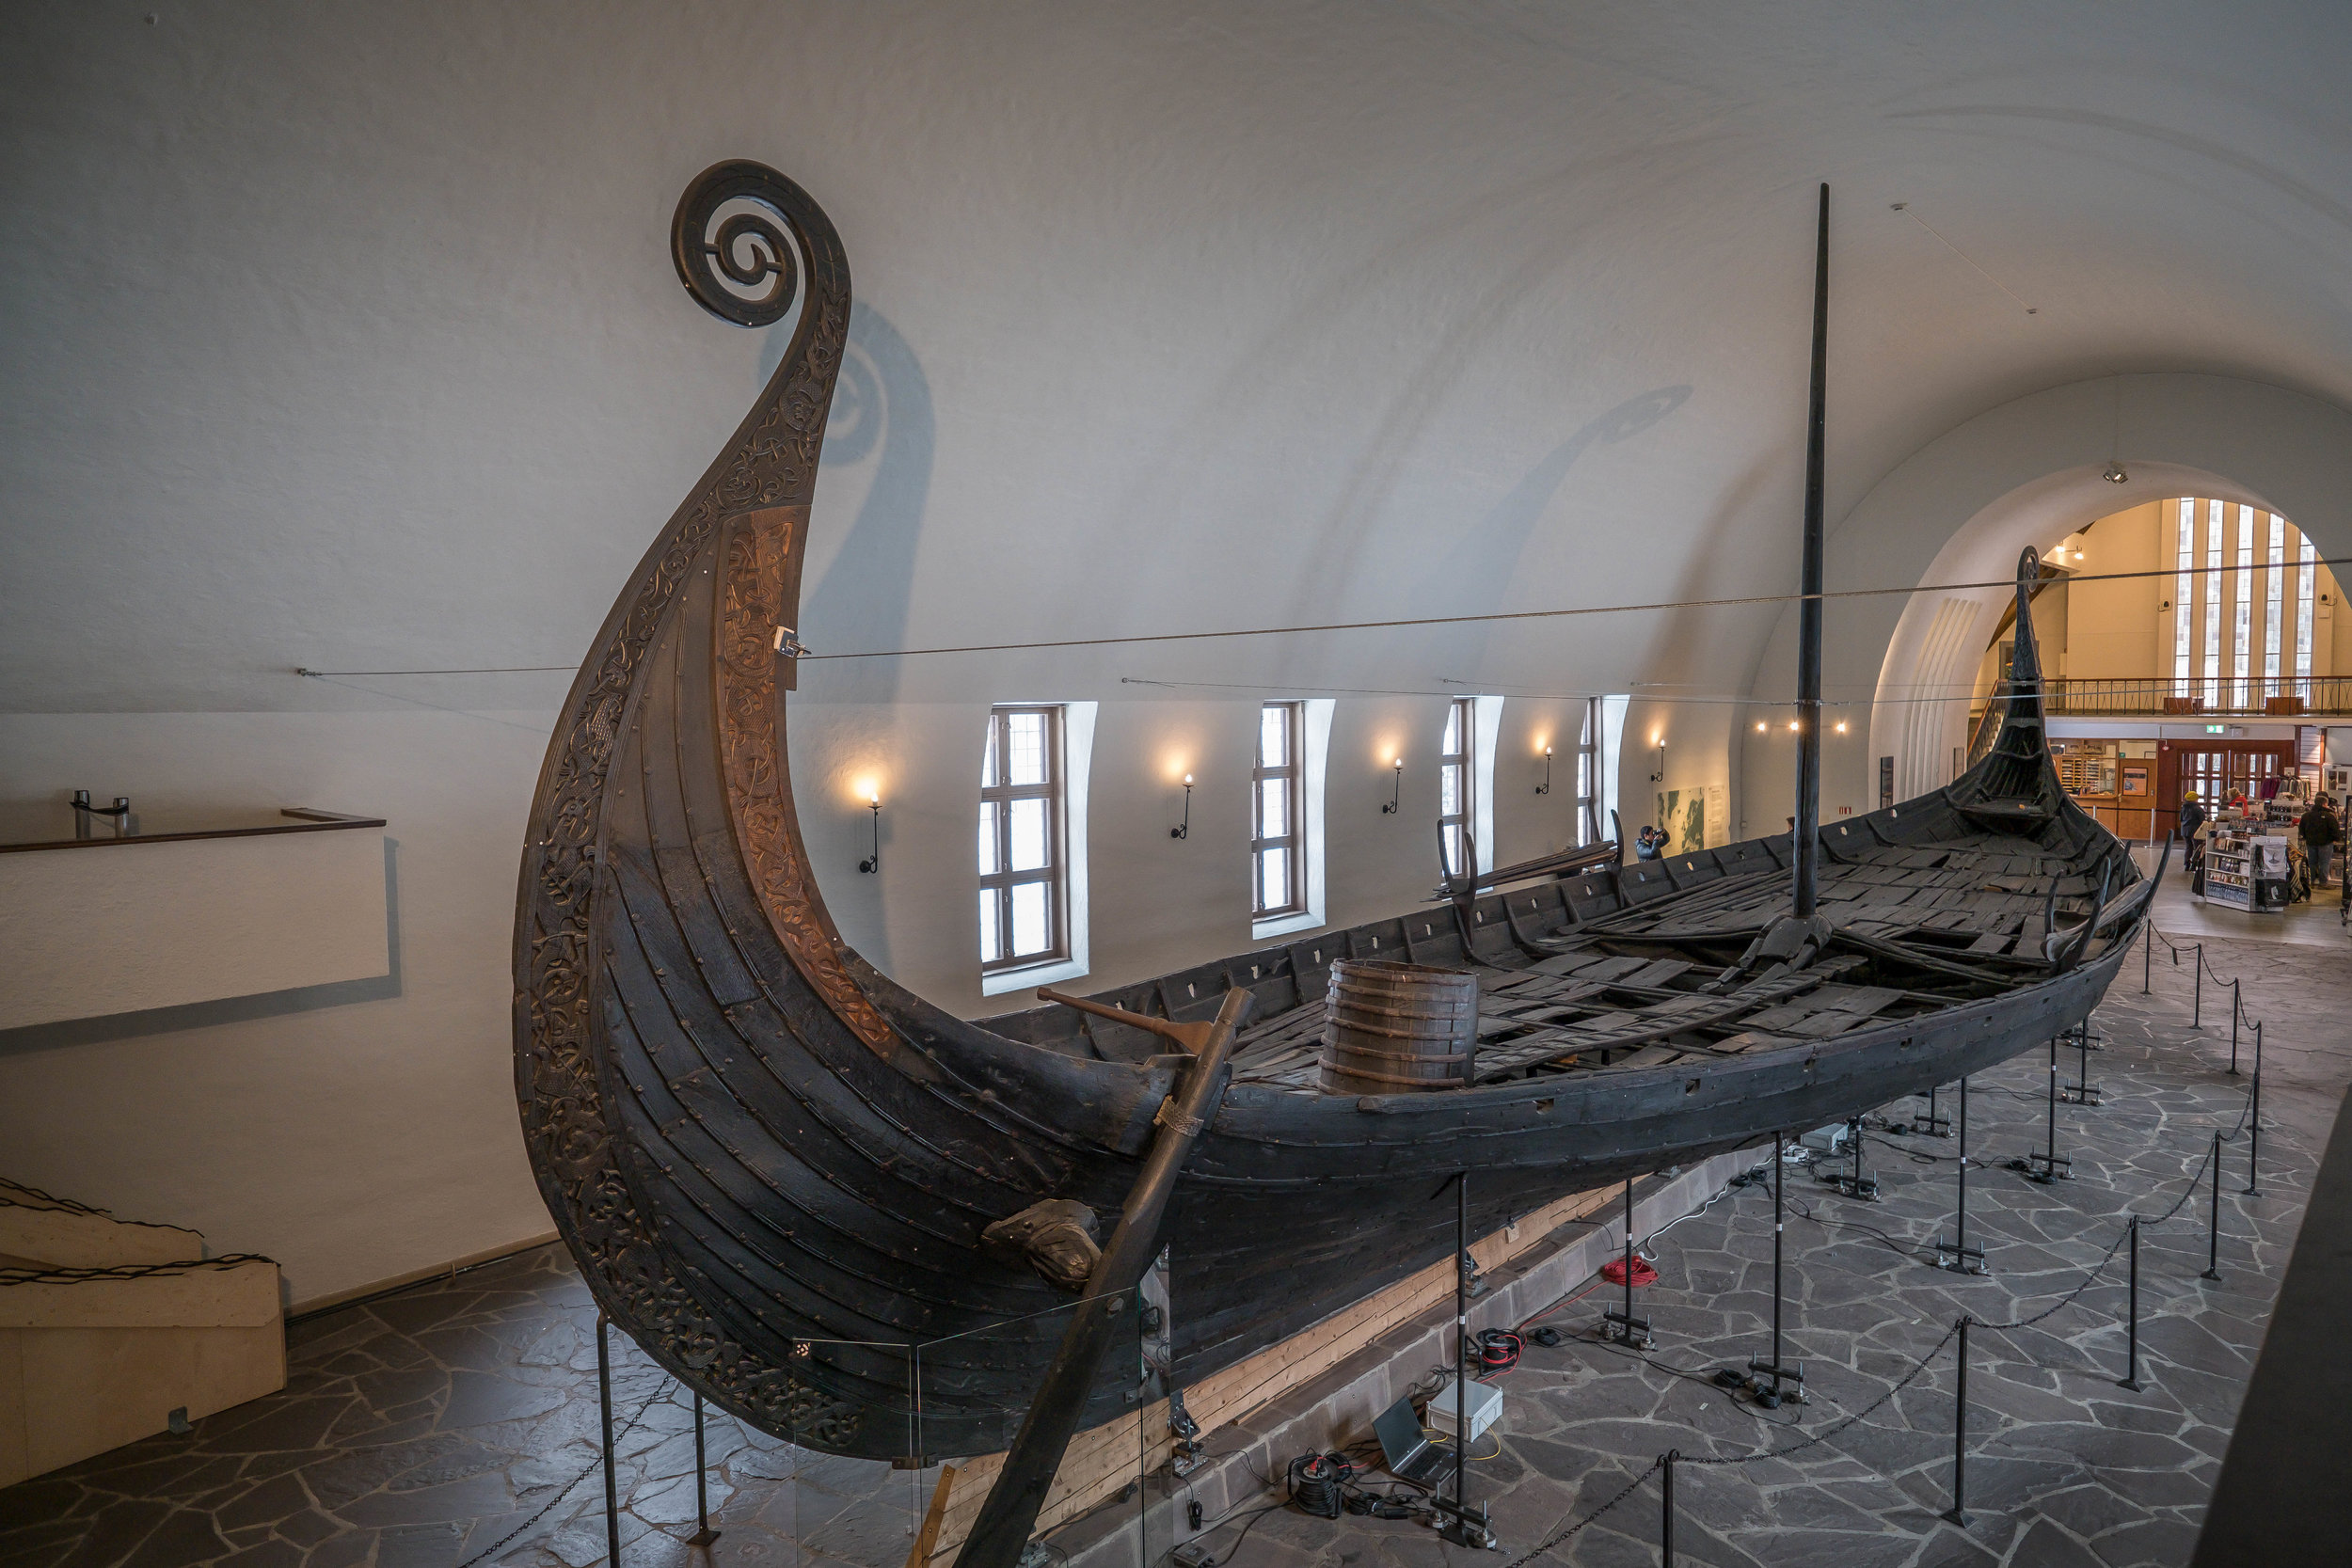 Viking Museum - If you have an abundance of time, it's worth checking out, but while interesting, it's quite small. If you're really short on time, skip it and head to the Fram Museum.